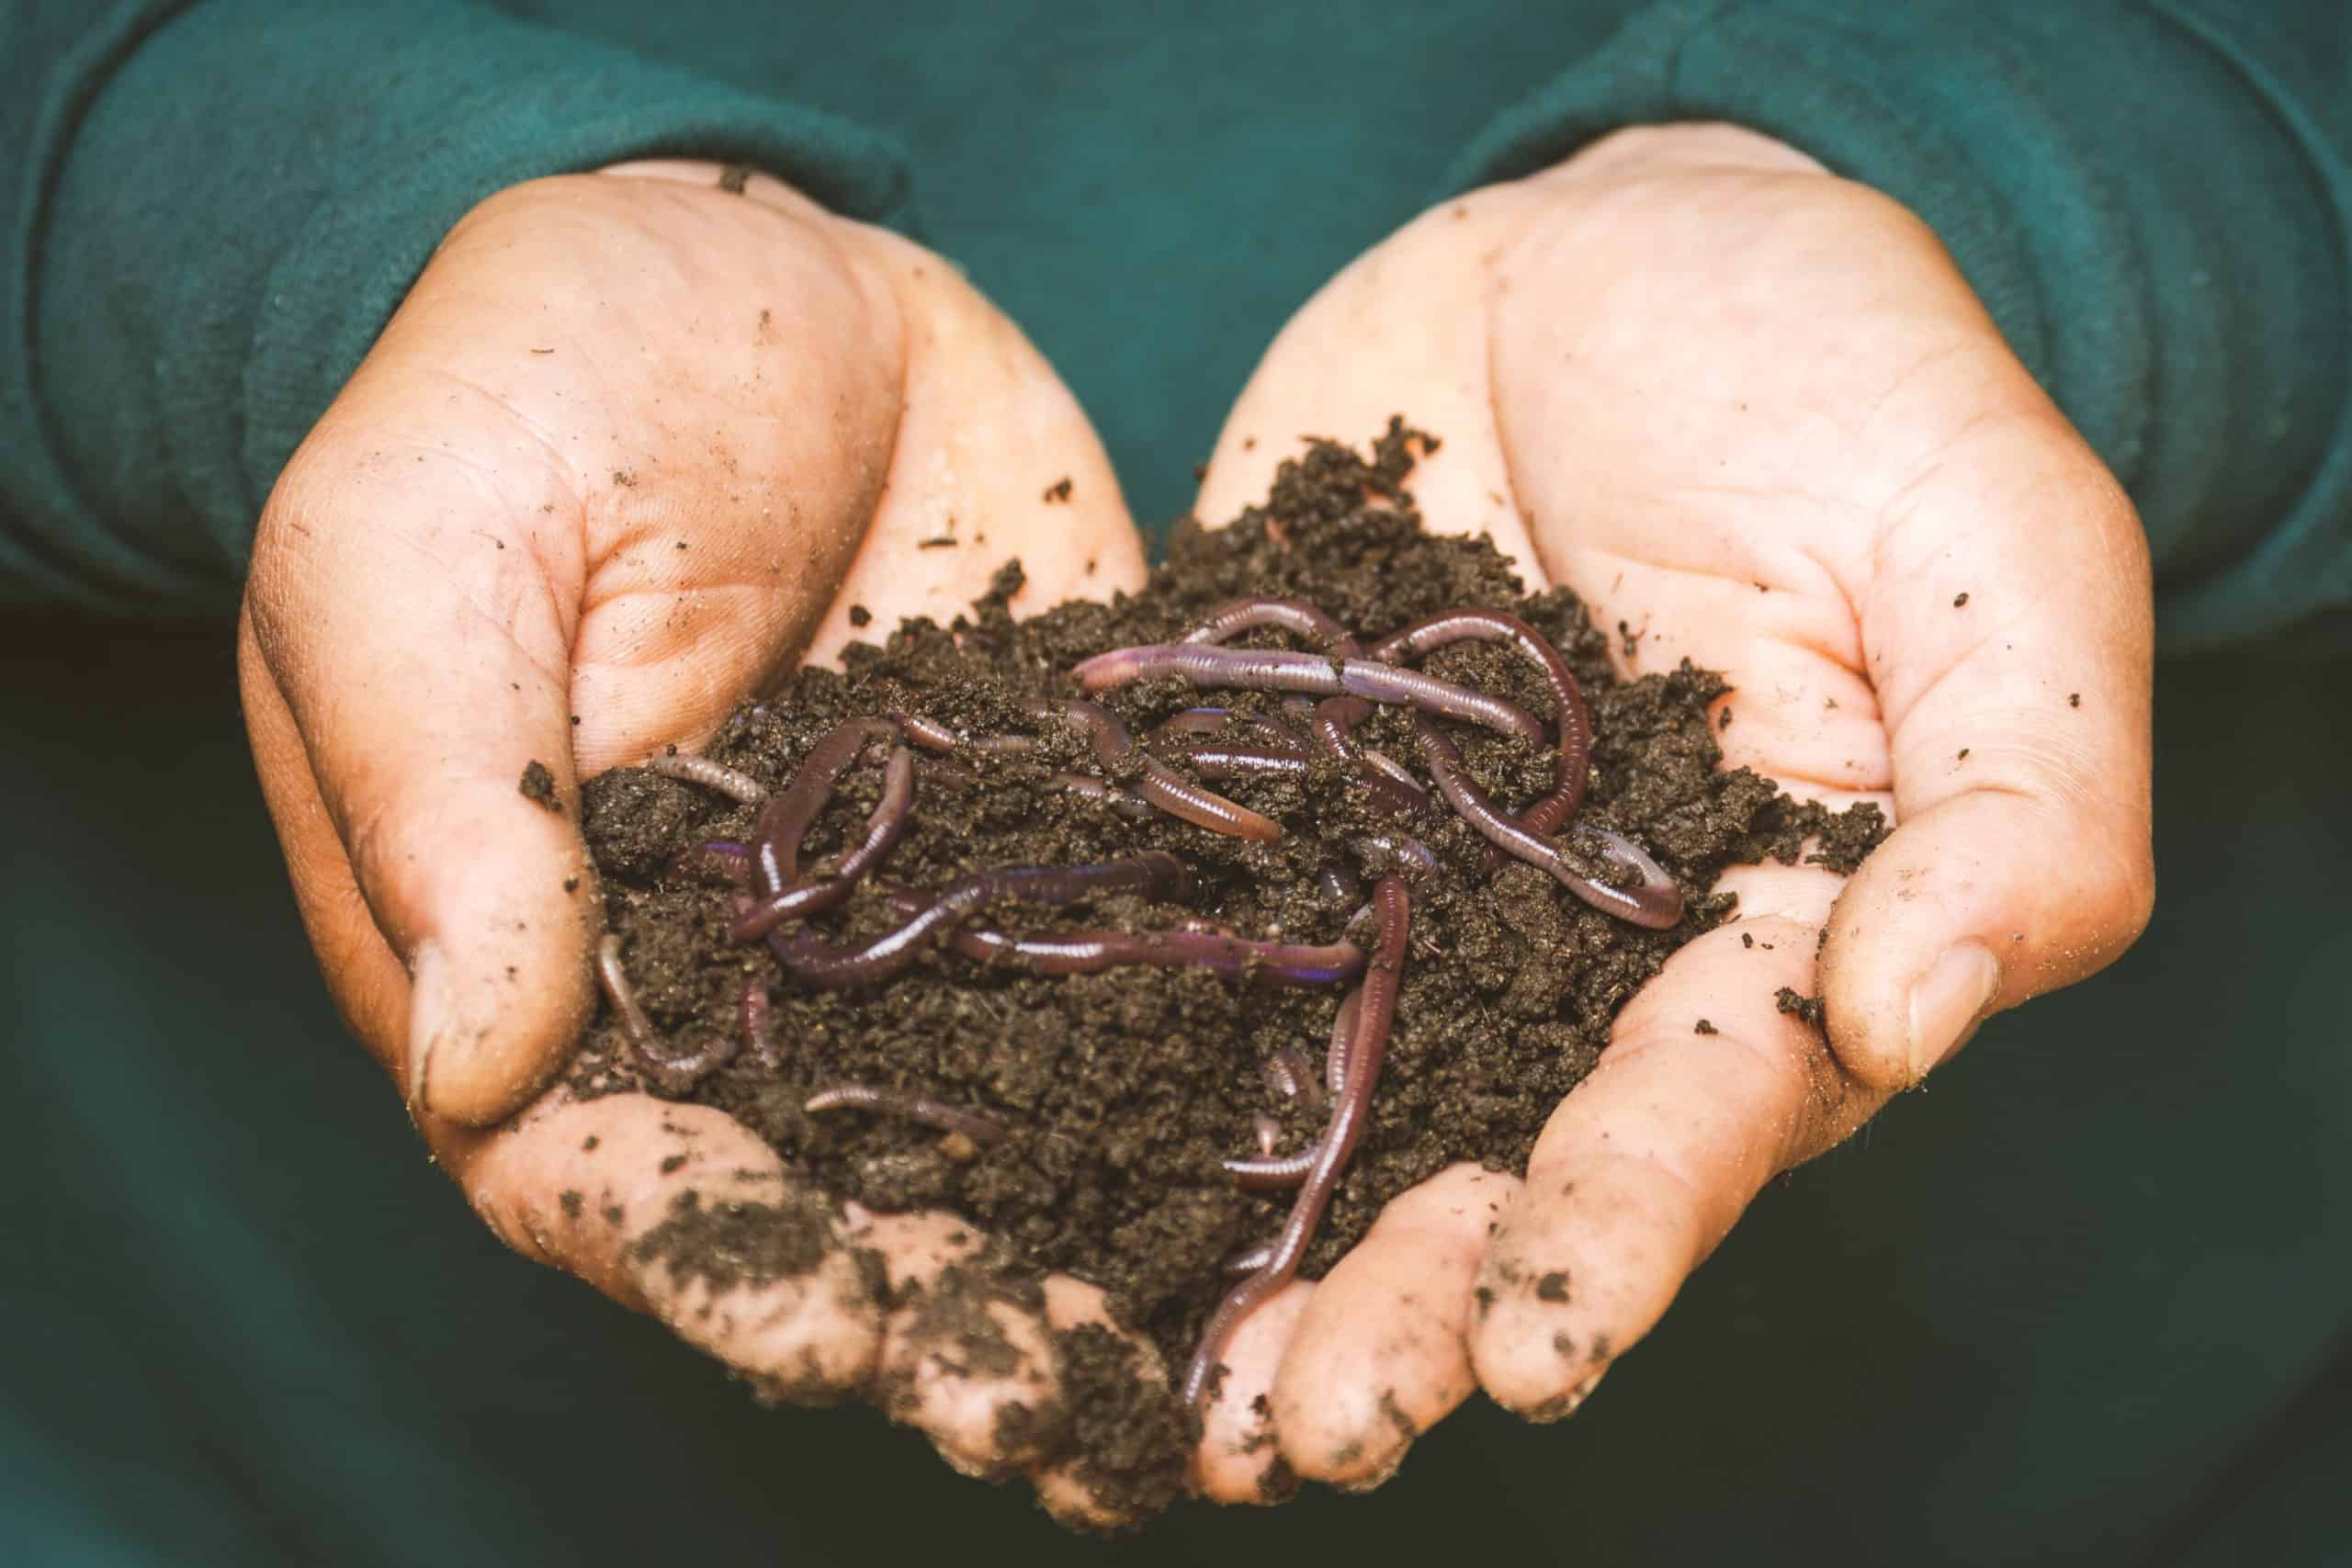 The Best Baitworms Fishing: Selection, Presentation, and Storage